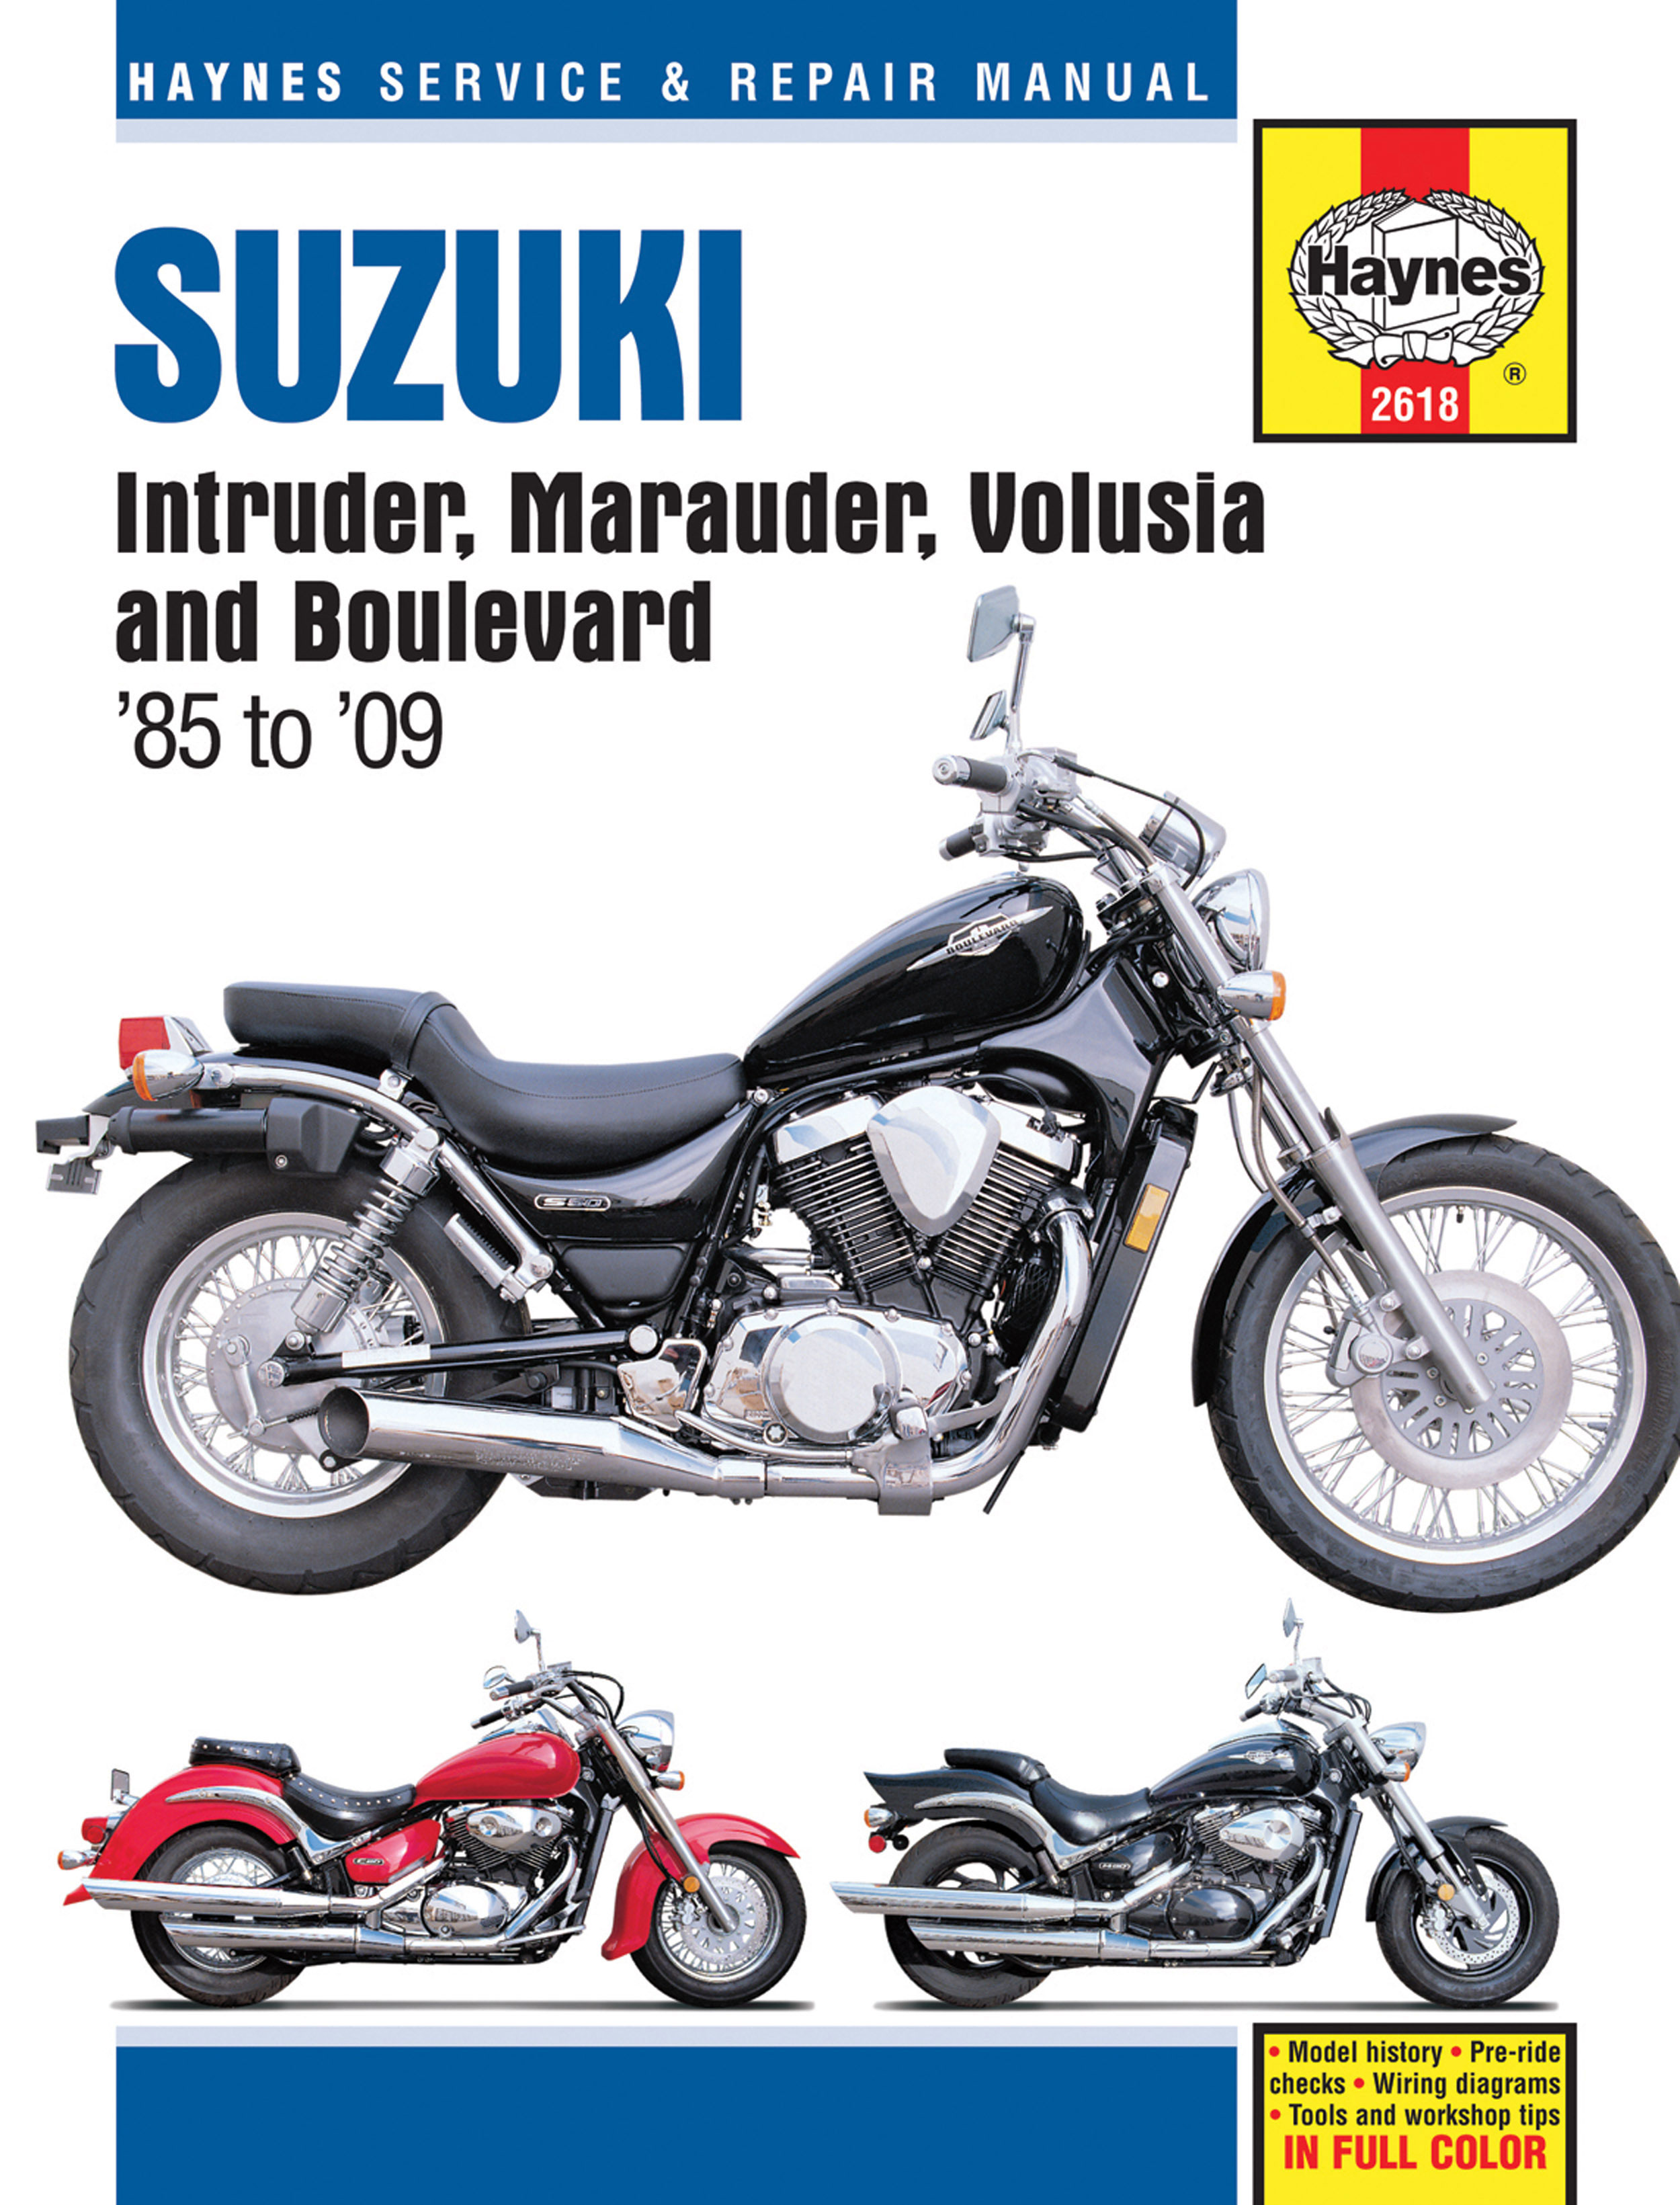 haynes repair manual suzuki vs700 vs750 vs800 intruder 1985 04 rh motorcycleworks com suzuki vs 750 service manual 1980 Suzuki GS 250 T Repair Manual